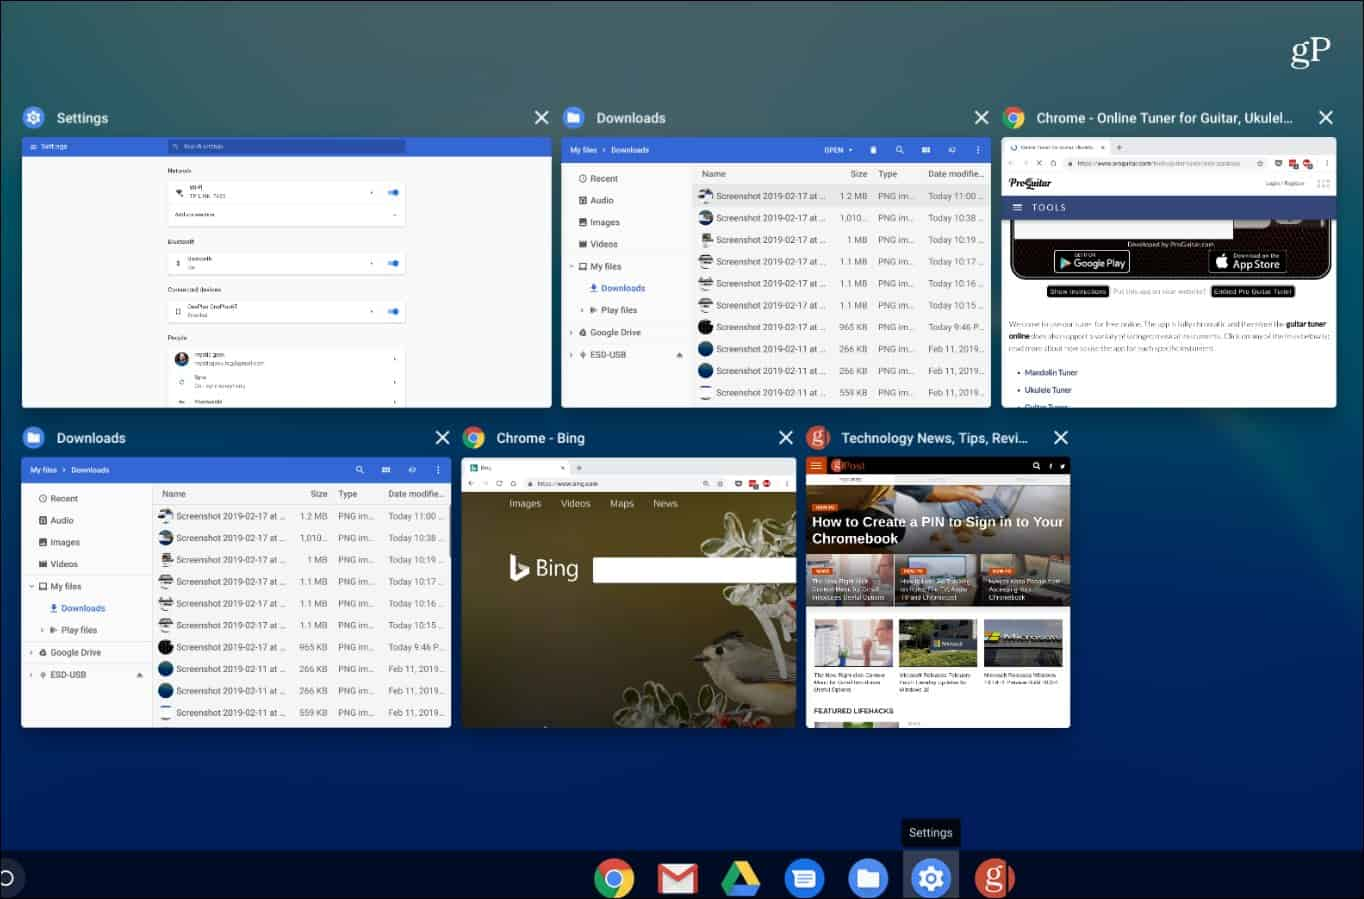 Switcher View Chromebook